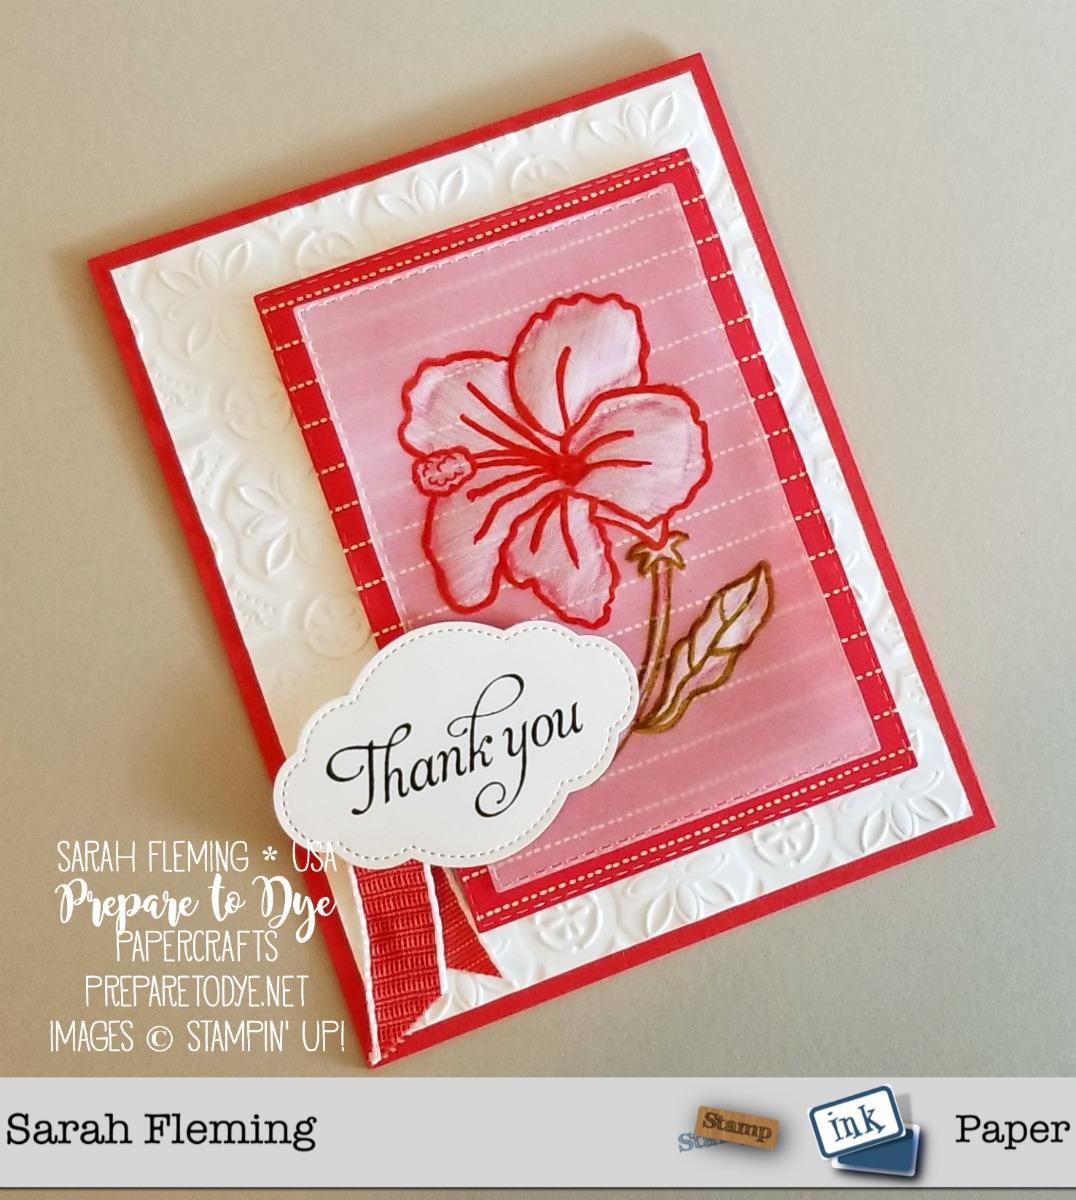 Stampin' Up! Humming Along stamps with Needlepoint Nook paper, Tin Tile embossing folder, Pretty label Punch, embossed vellum technique - Sarah Fleming - Prepare to Dye Papercrafts